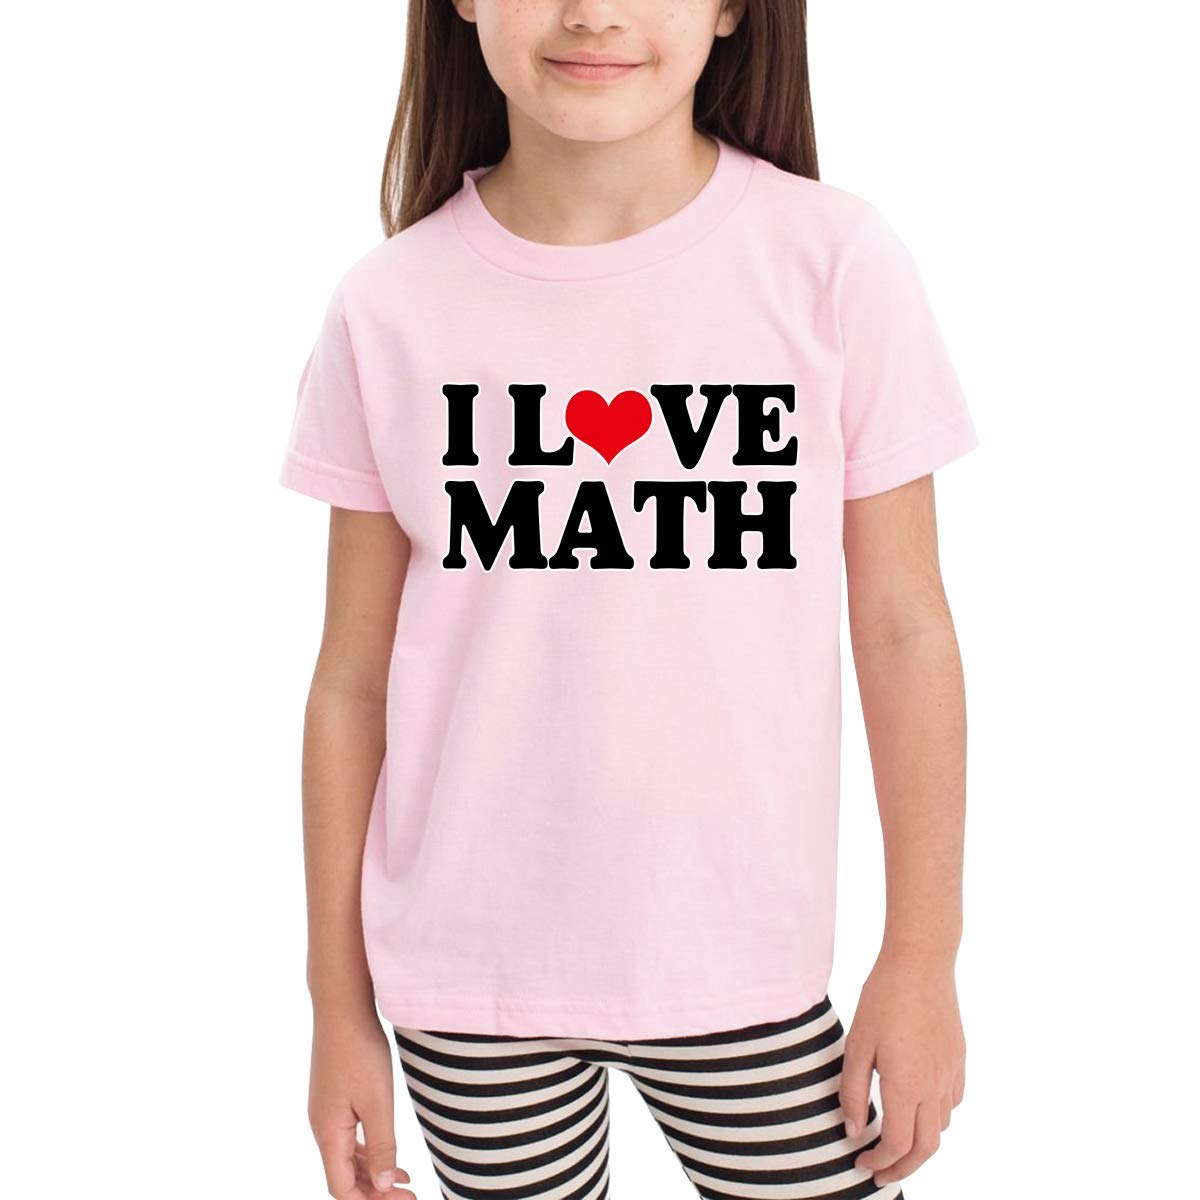 I Love My Wife 2-6 Years Old Children Short-Sleeved T Shirts